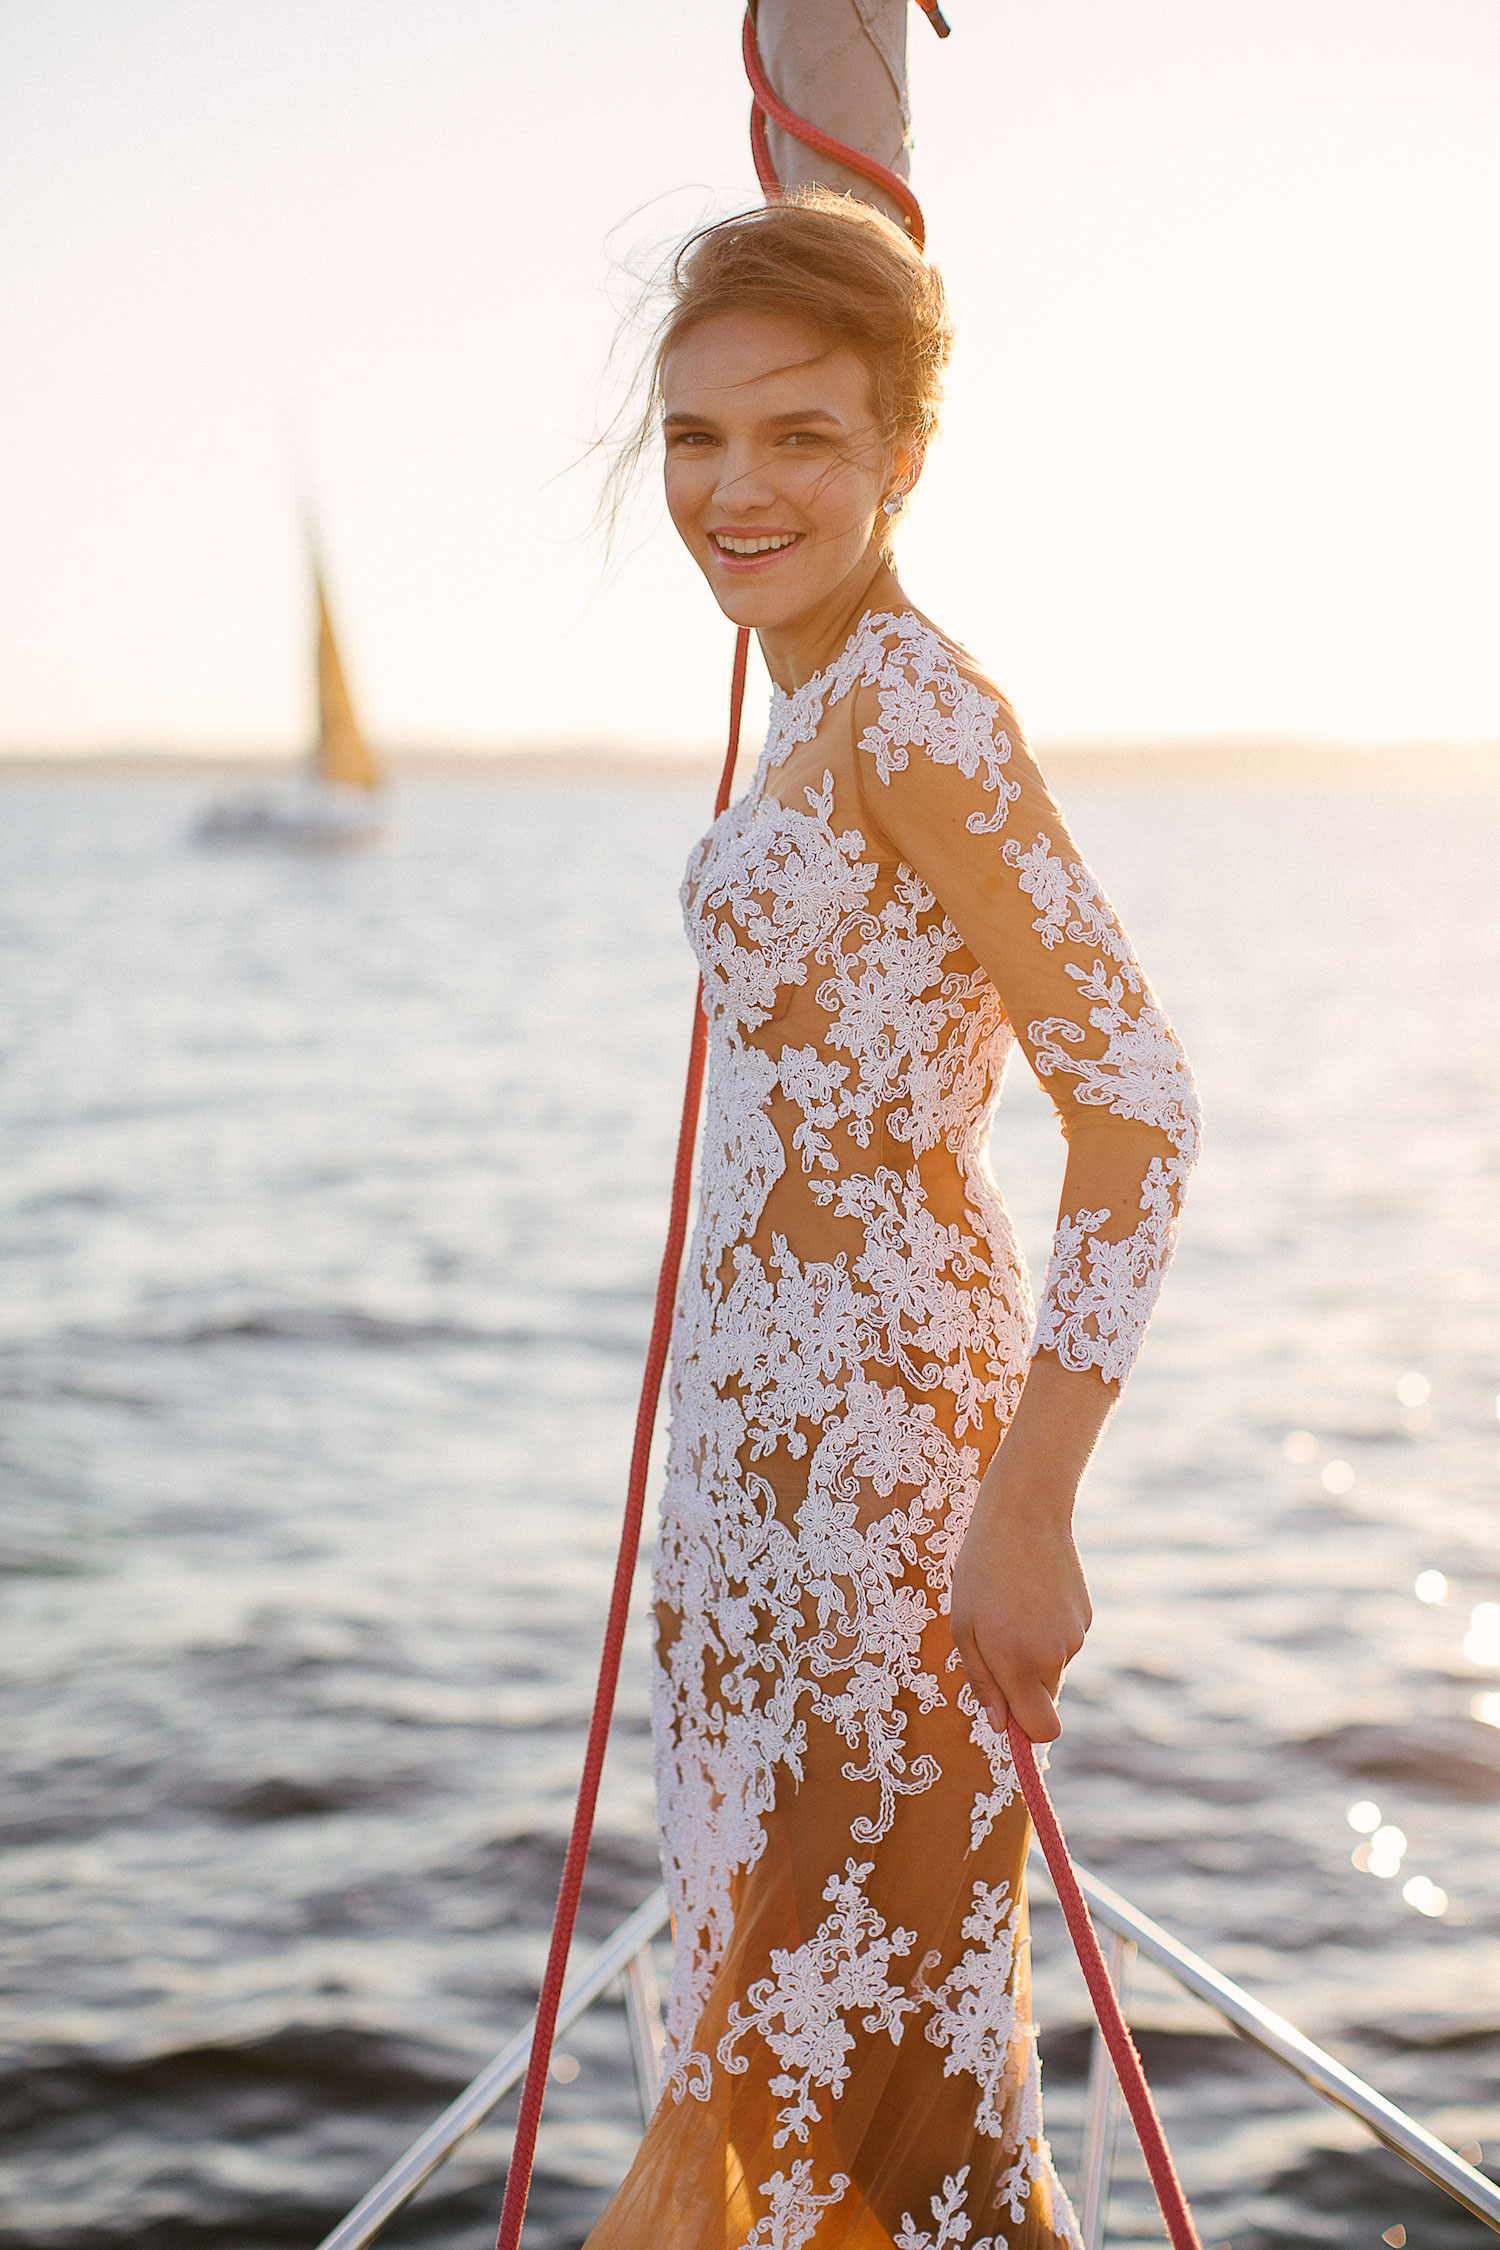 Bride in sheer long sleeve wedding dress on bow of sailboat